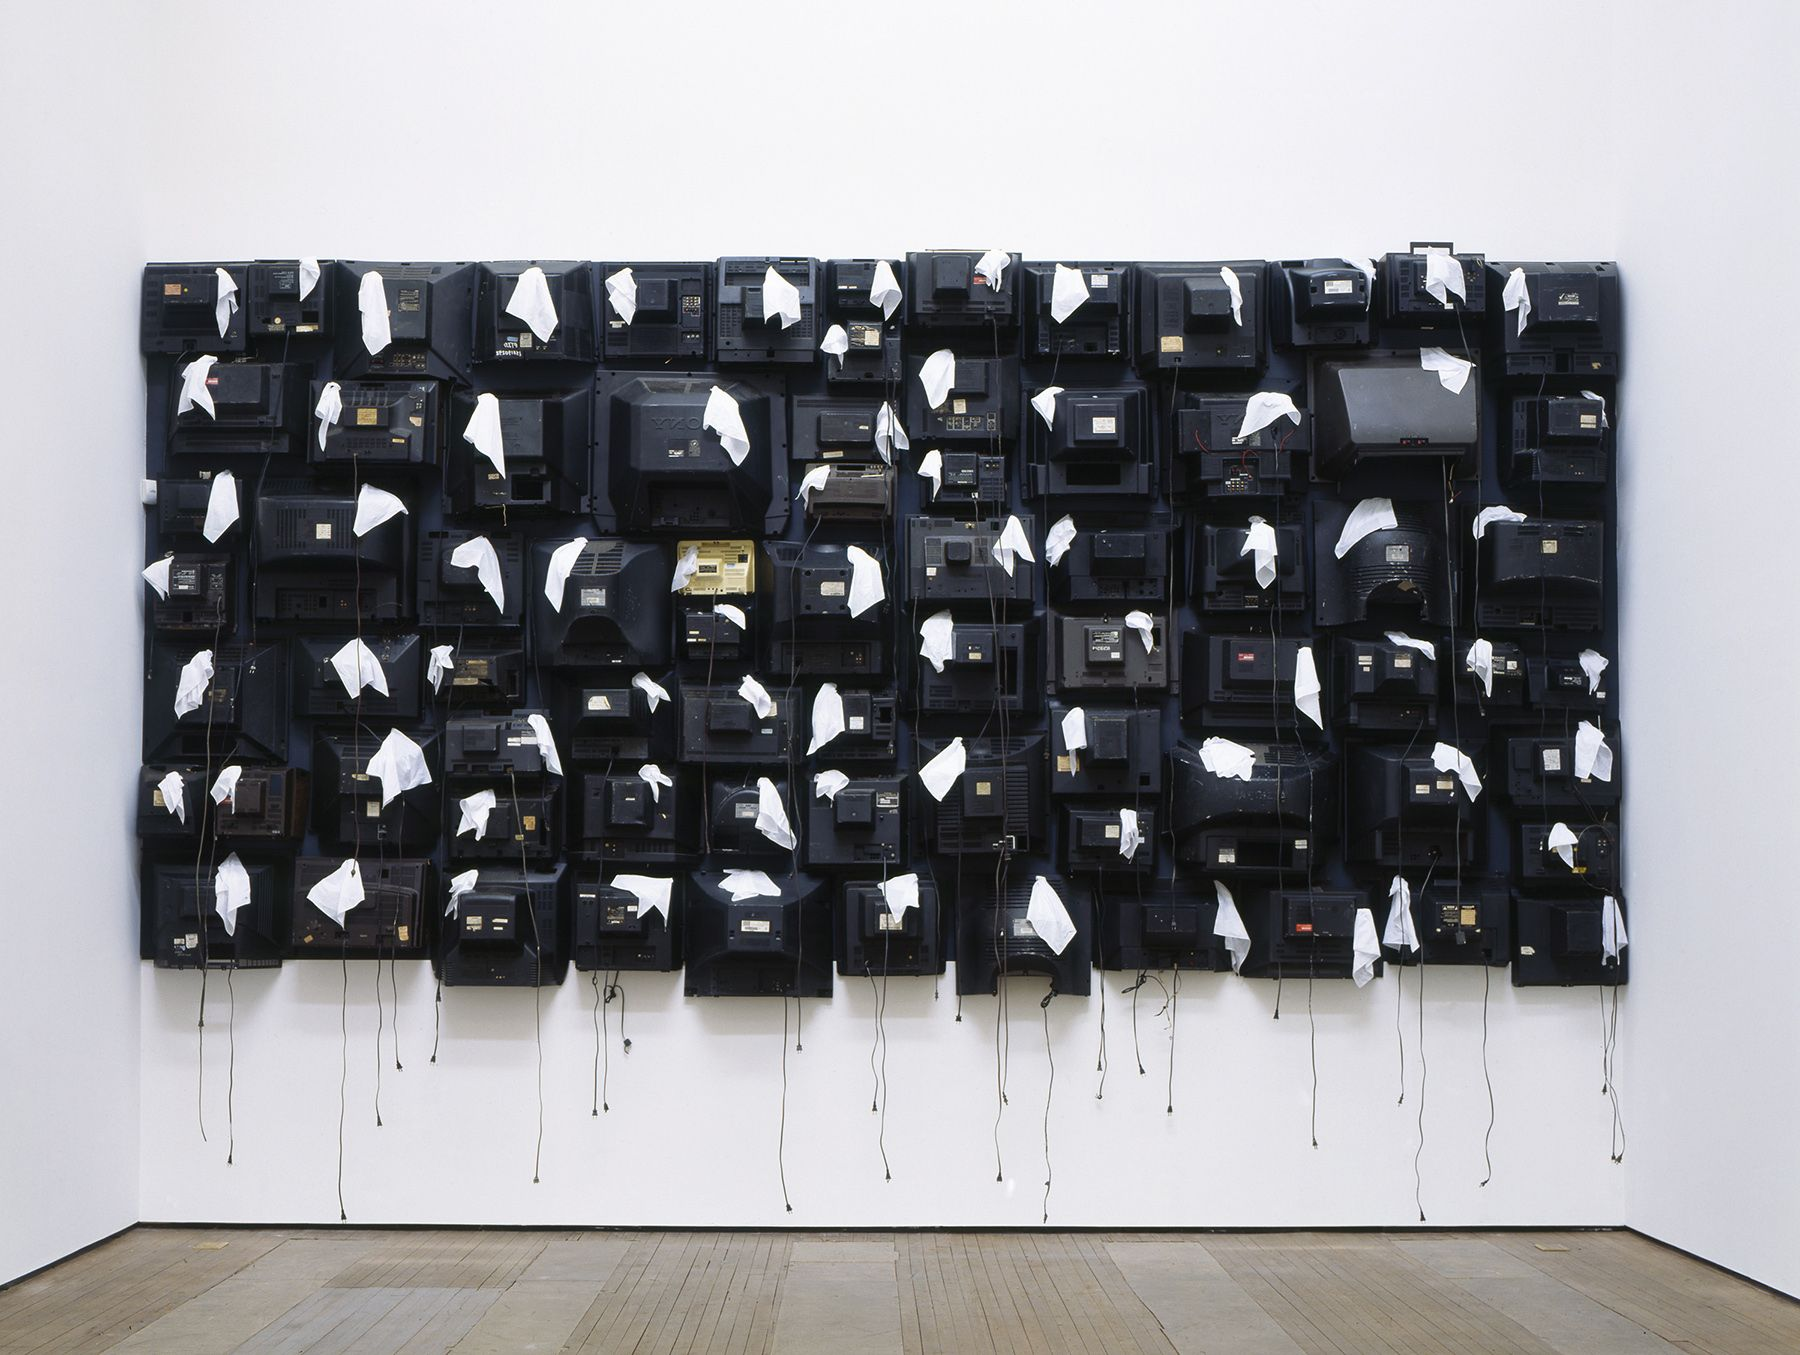 Airplane Tears,2005 Site-specific installation of found TV backs and facial tissues